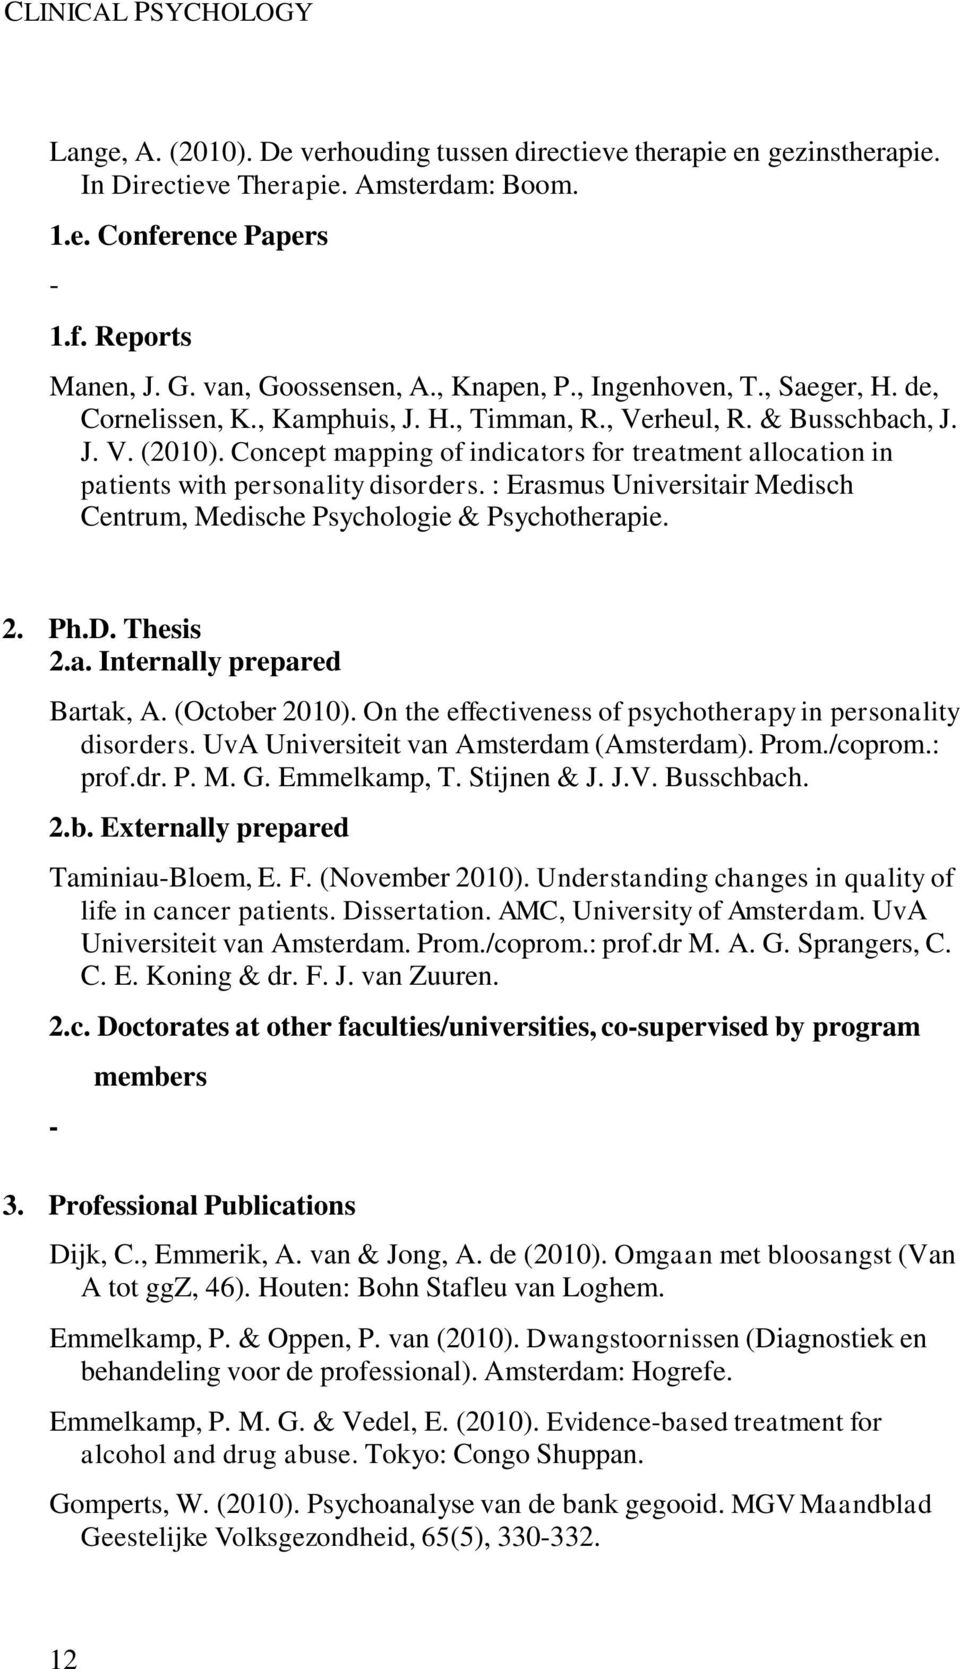 Concept mapping of indicators for treatment allocation in patients with personality disorders. : Erasmus Universitair Medisch Centrum, Medische Psychologie & Psychotherapie. 2. Ph.D. Thesis 2.a. Internally prepared Bartak, A.